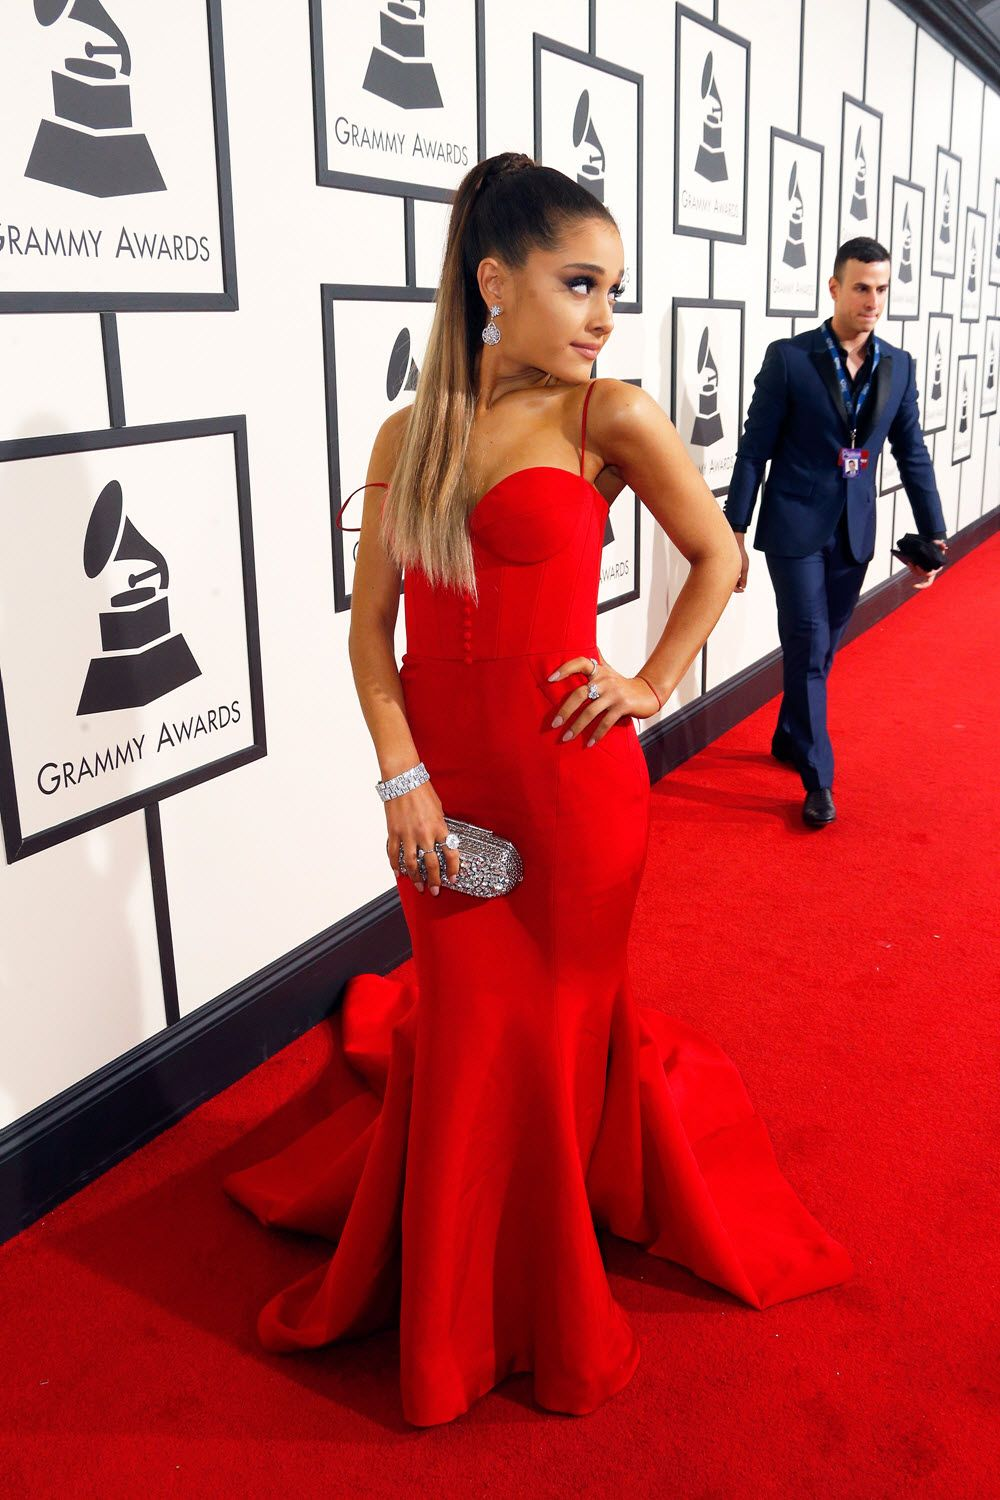 48c016fec10 Ari at the Grammy s 2016 She looks so Beautiful! ♡ Pinterest     1kco0zwe8r4mzzk.